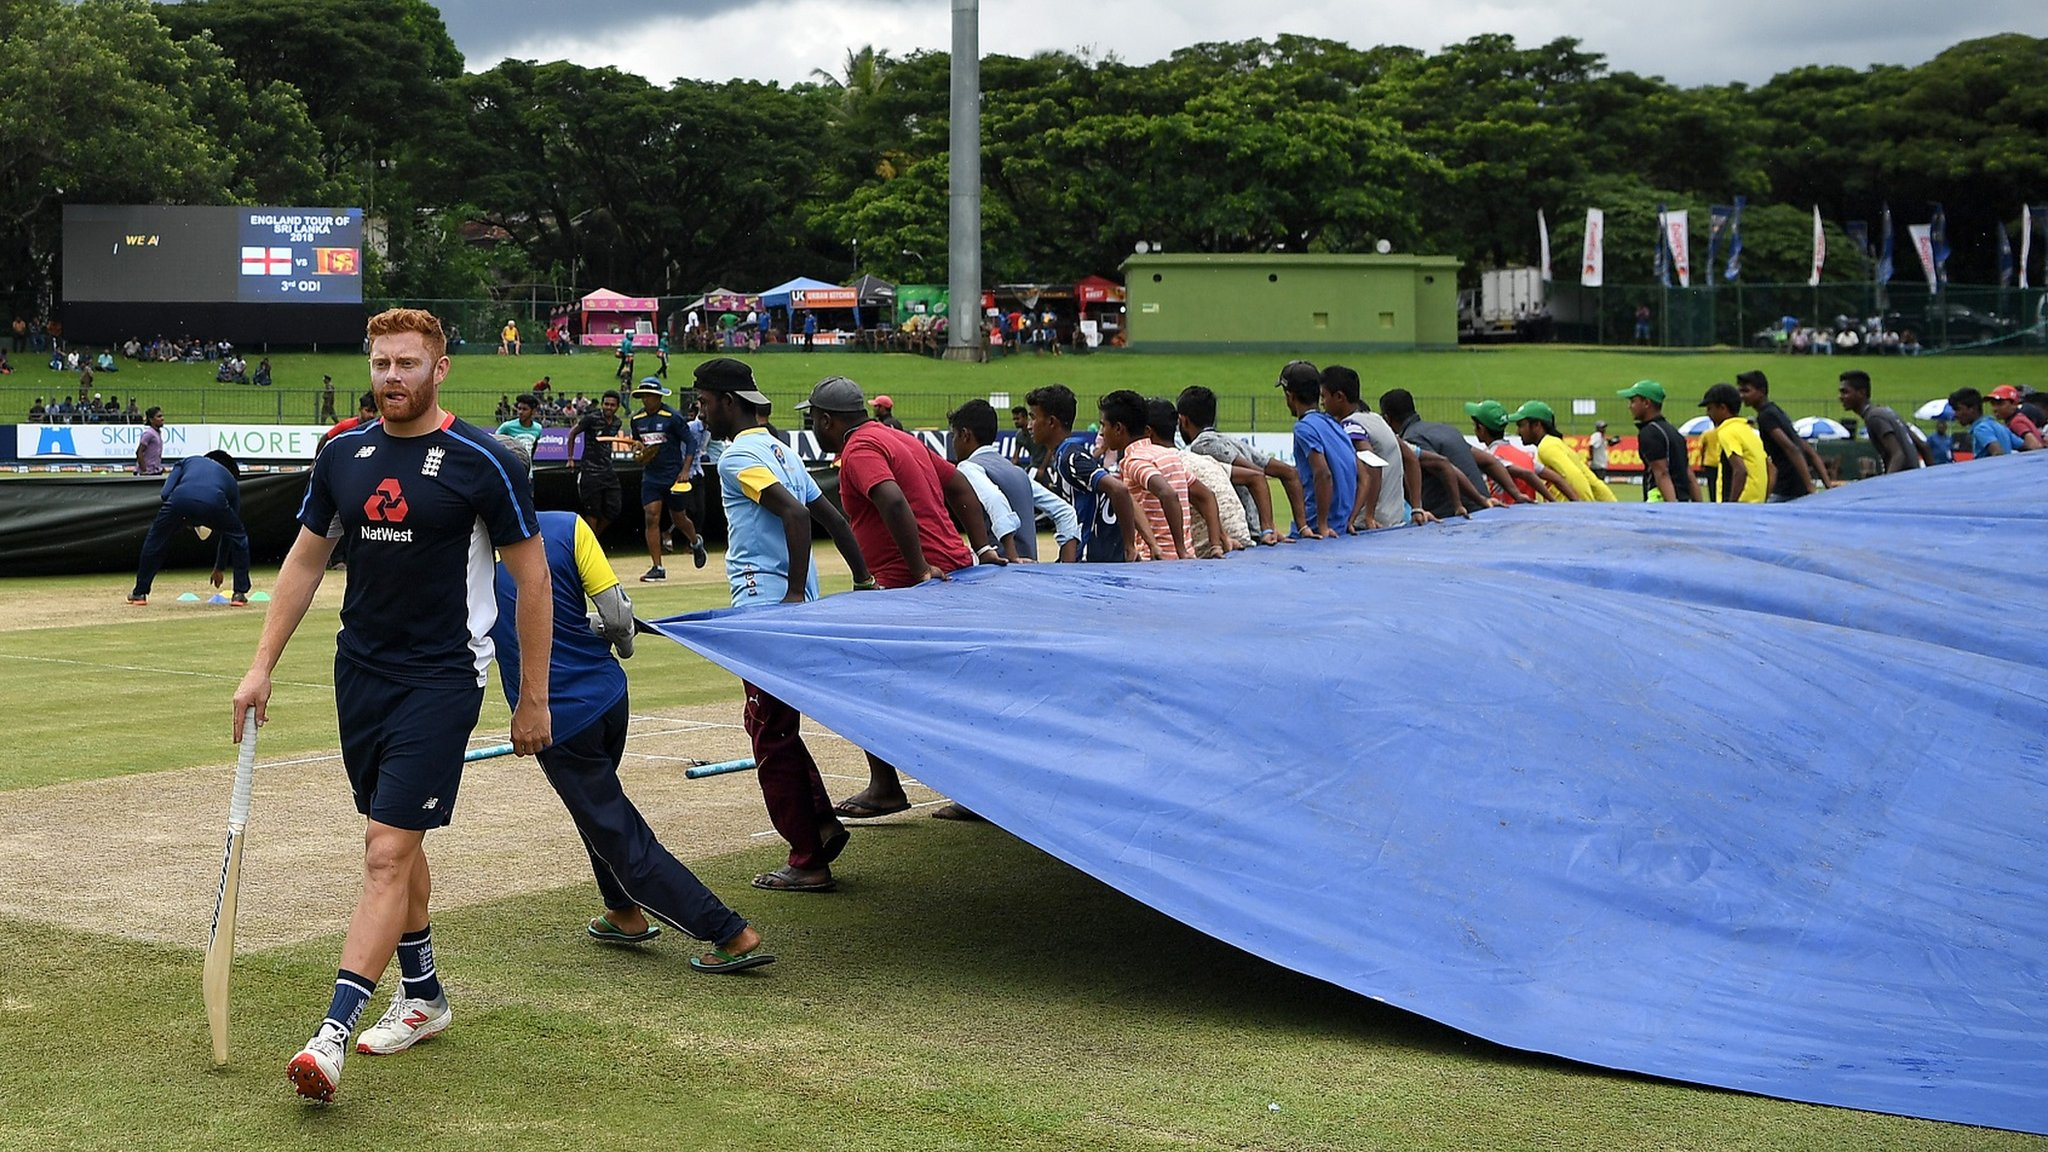 Sri Lanka v England: ECB defends touring during monsoon season